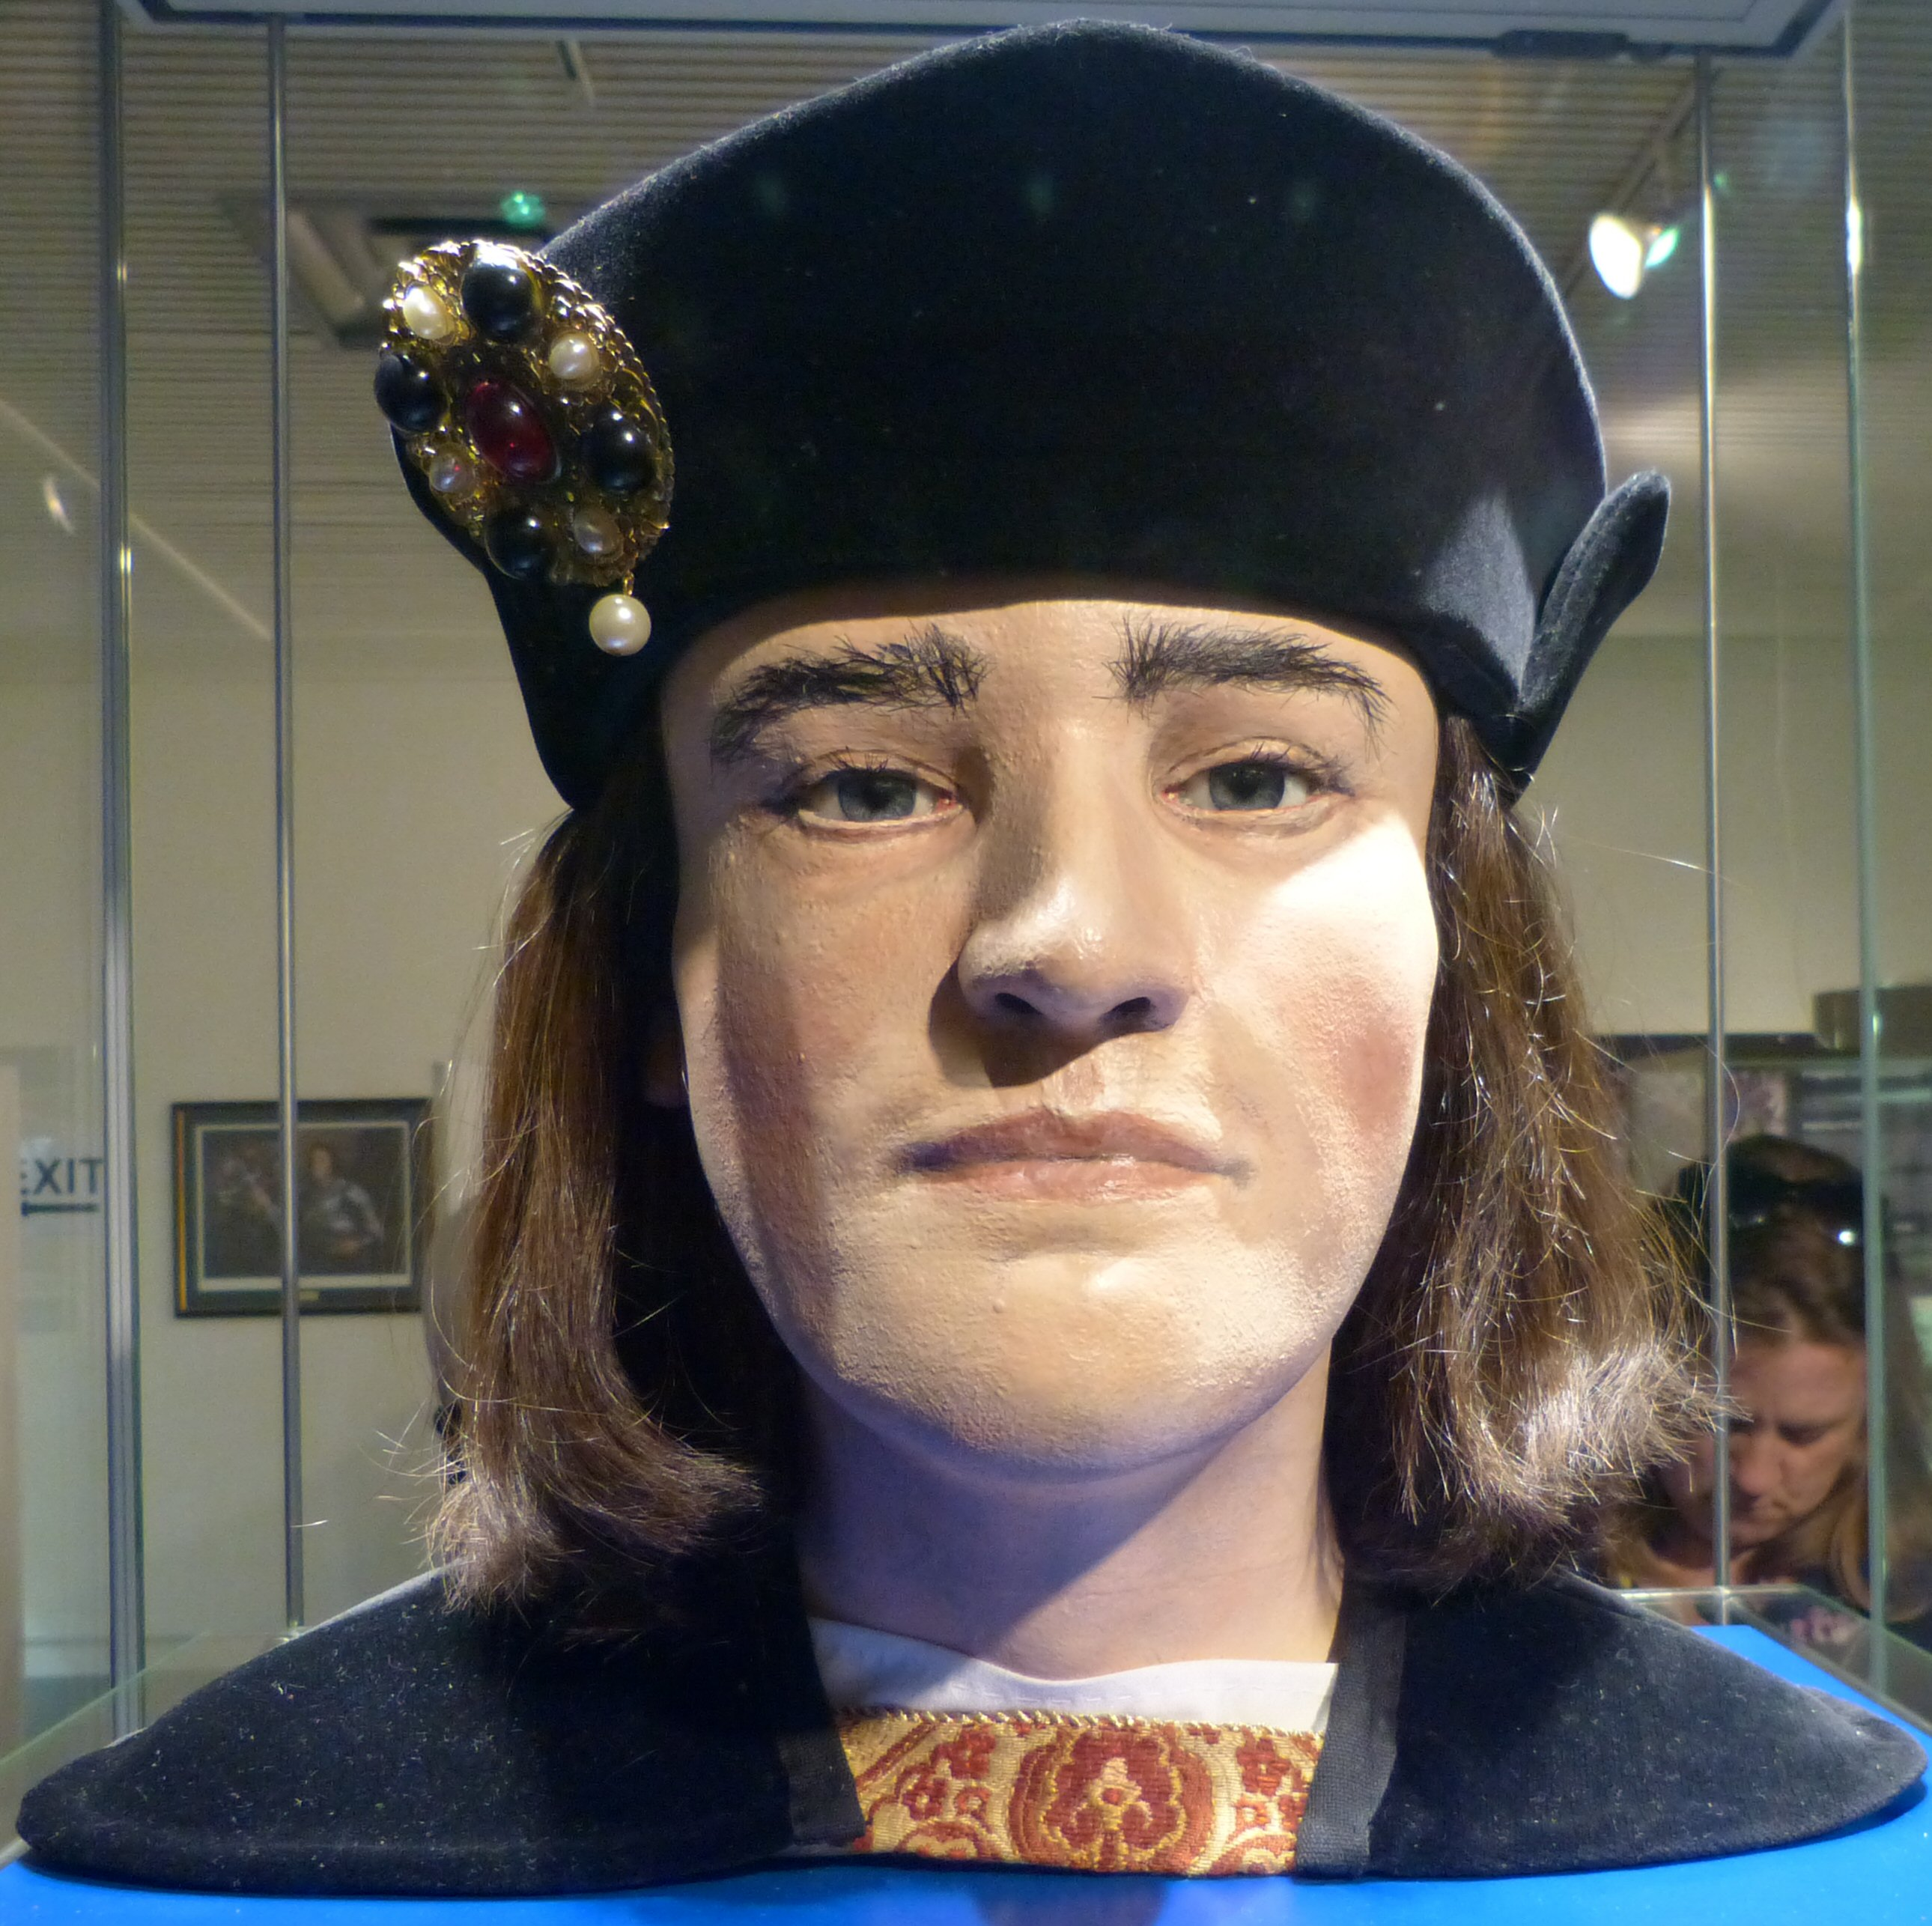 king richard iii and looking for Looking for richard blade runner ten things i hate richard iii appears to be focussed singularly on power and how it is achieved and maintained king.